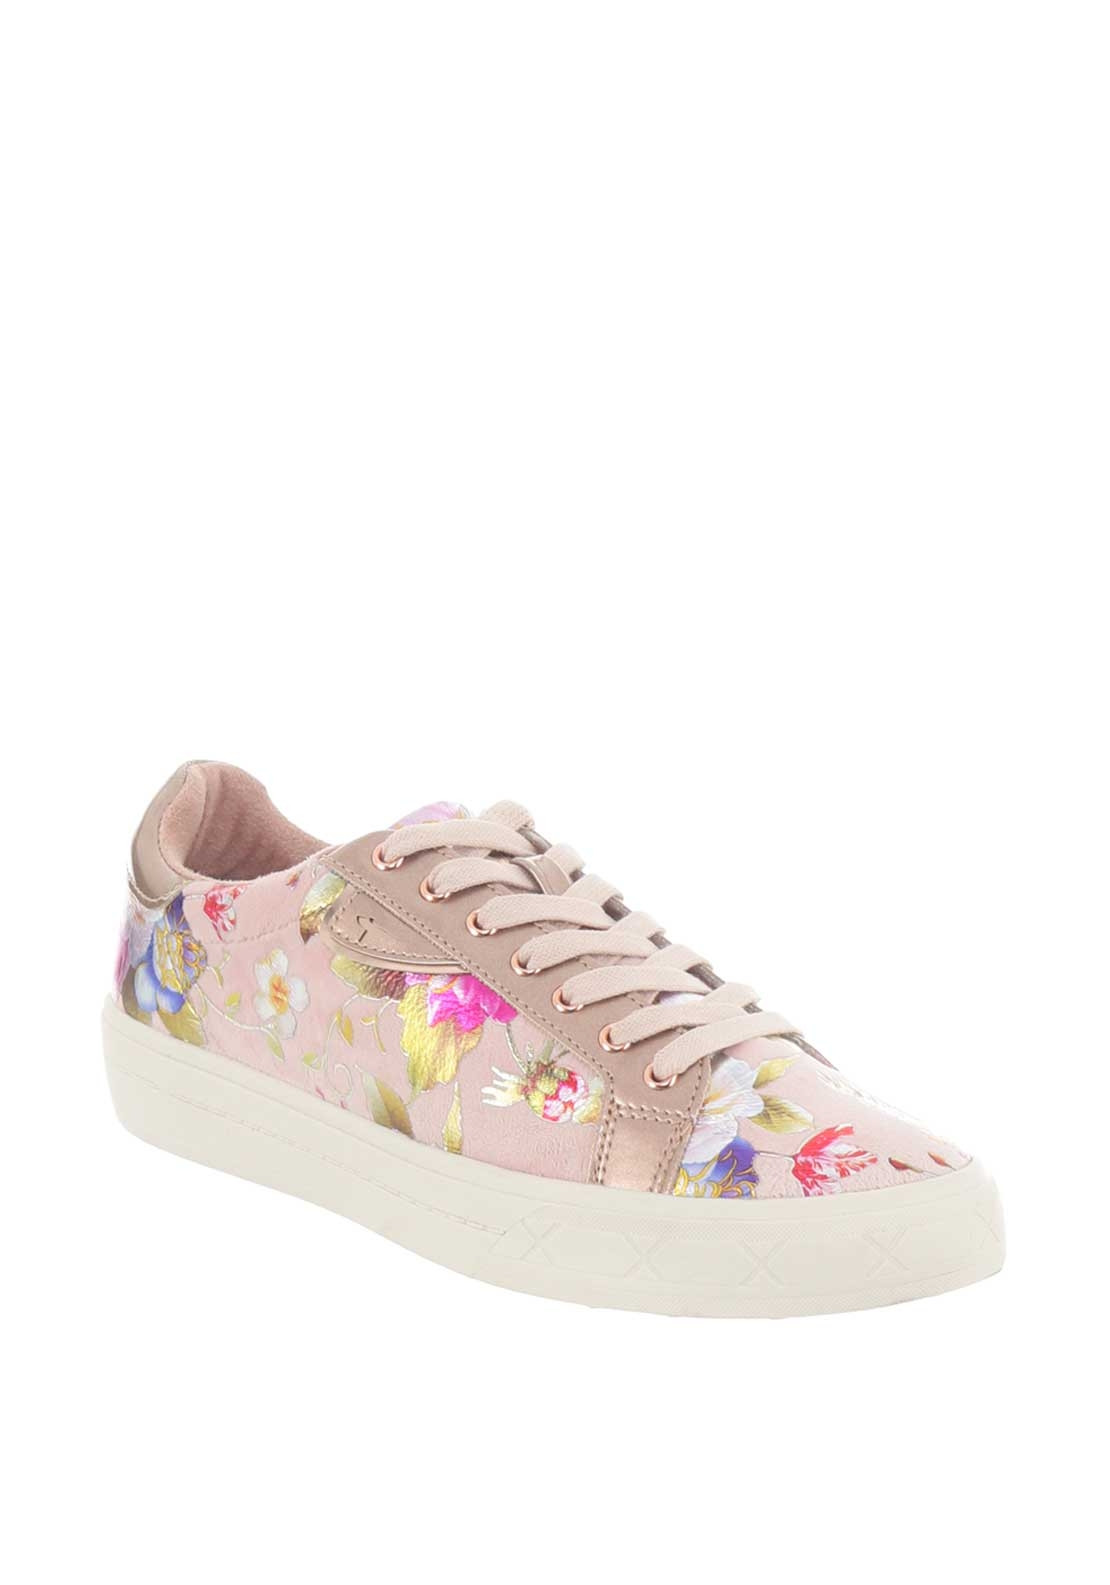 Tamaris Velour Floral Metallic Trainers, Pink